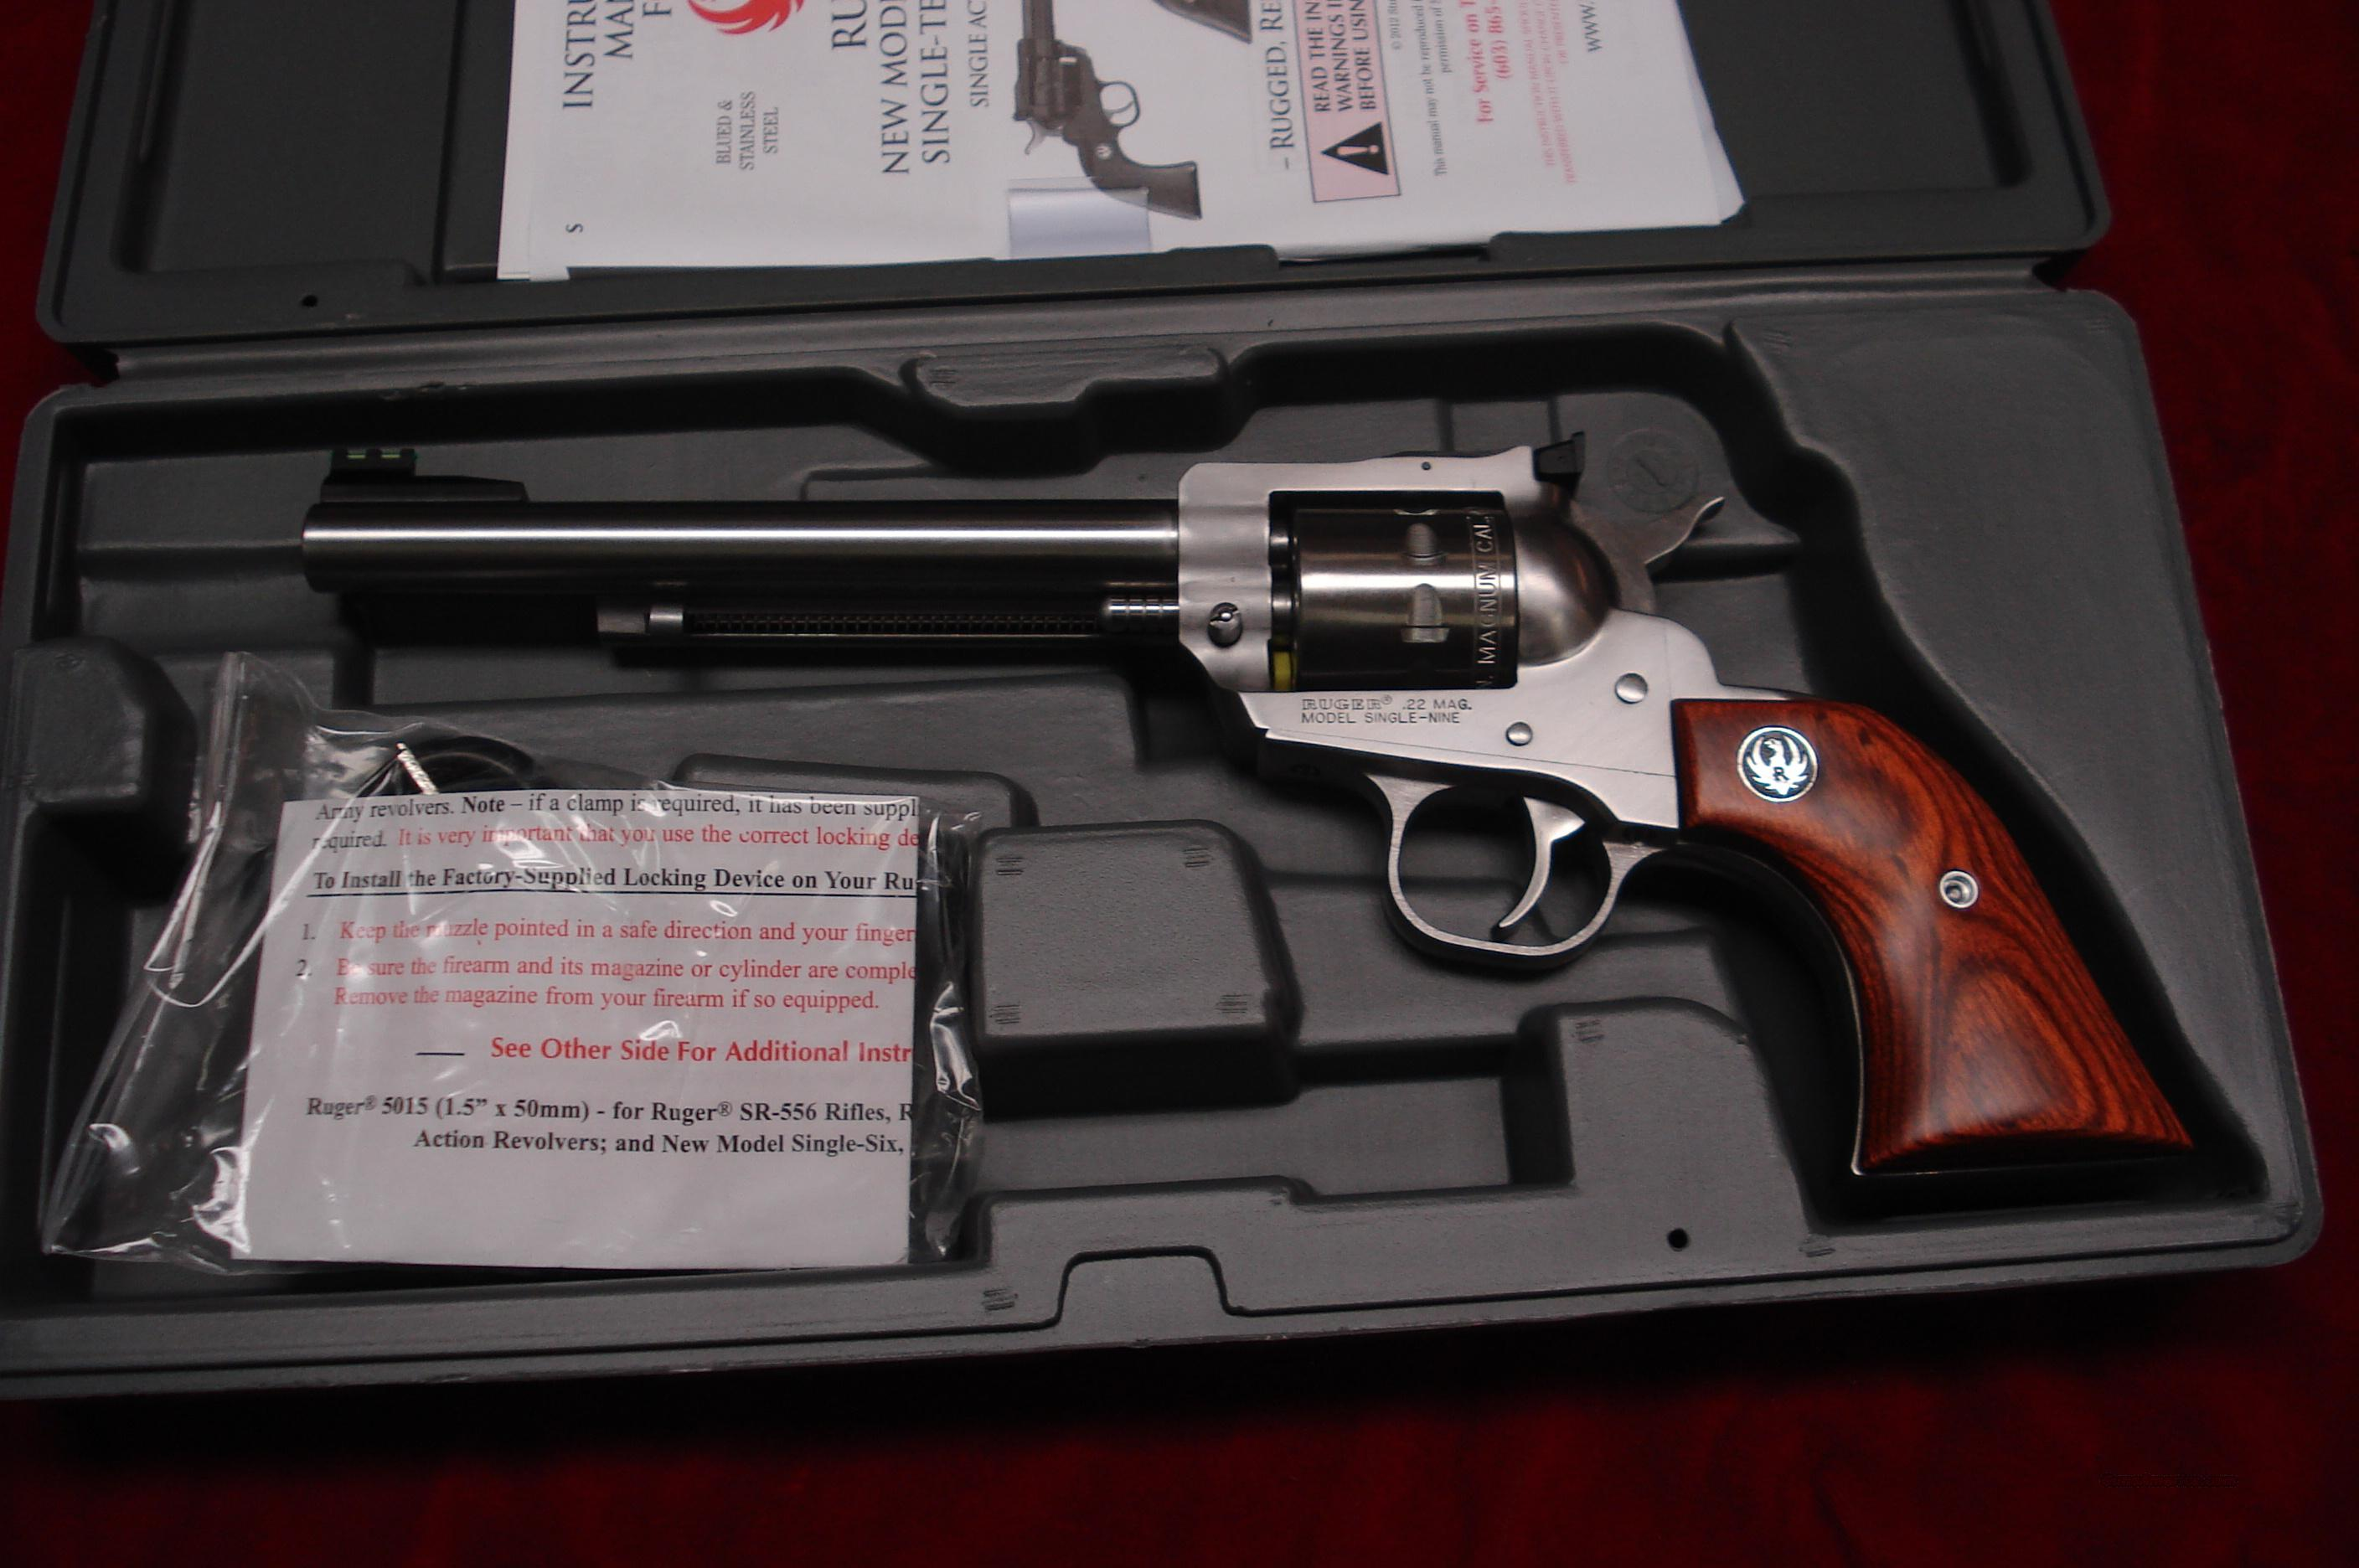 "RUGER SUPER SINGLE NINE 6.5"" STAINLESS 22MAG. CAL. NEW (KNR-6-9M) (08150)   Guns > Pistols > Ruger Single Action Revolvers > Single Six Type"